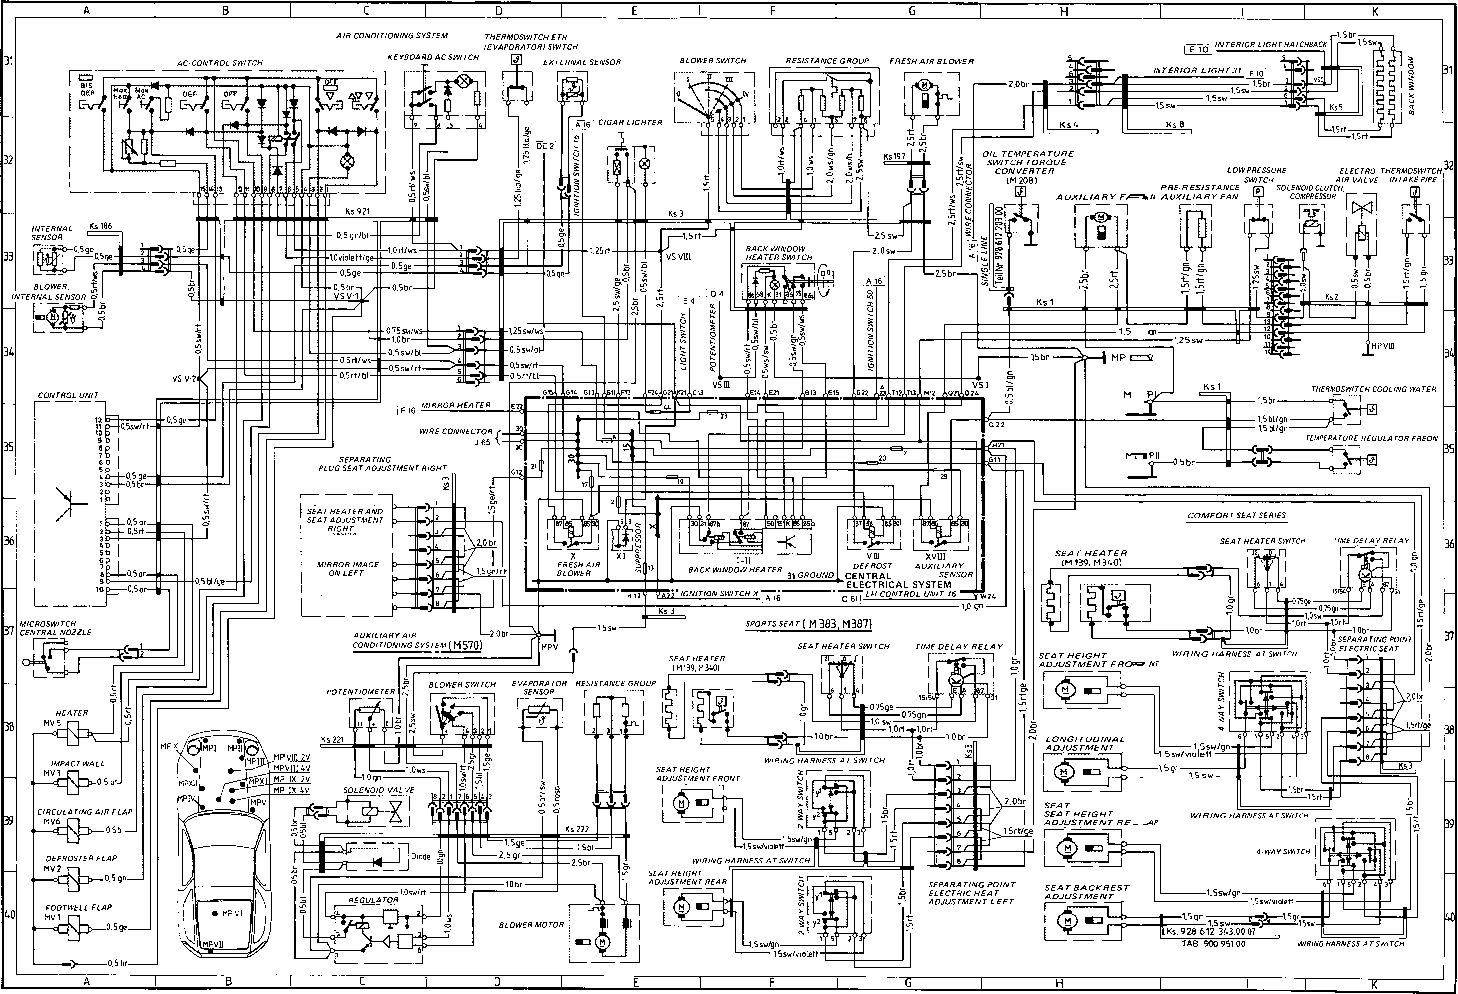 hight resolution of porsche engine diagram 1990 wiring diagram loadporsche engine diagram 1990 wiring diagram toolbox porsche engine diagram